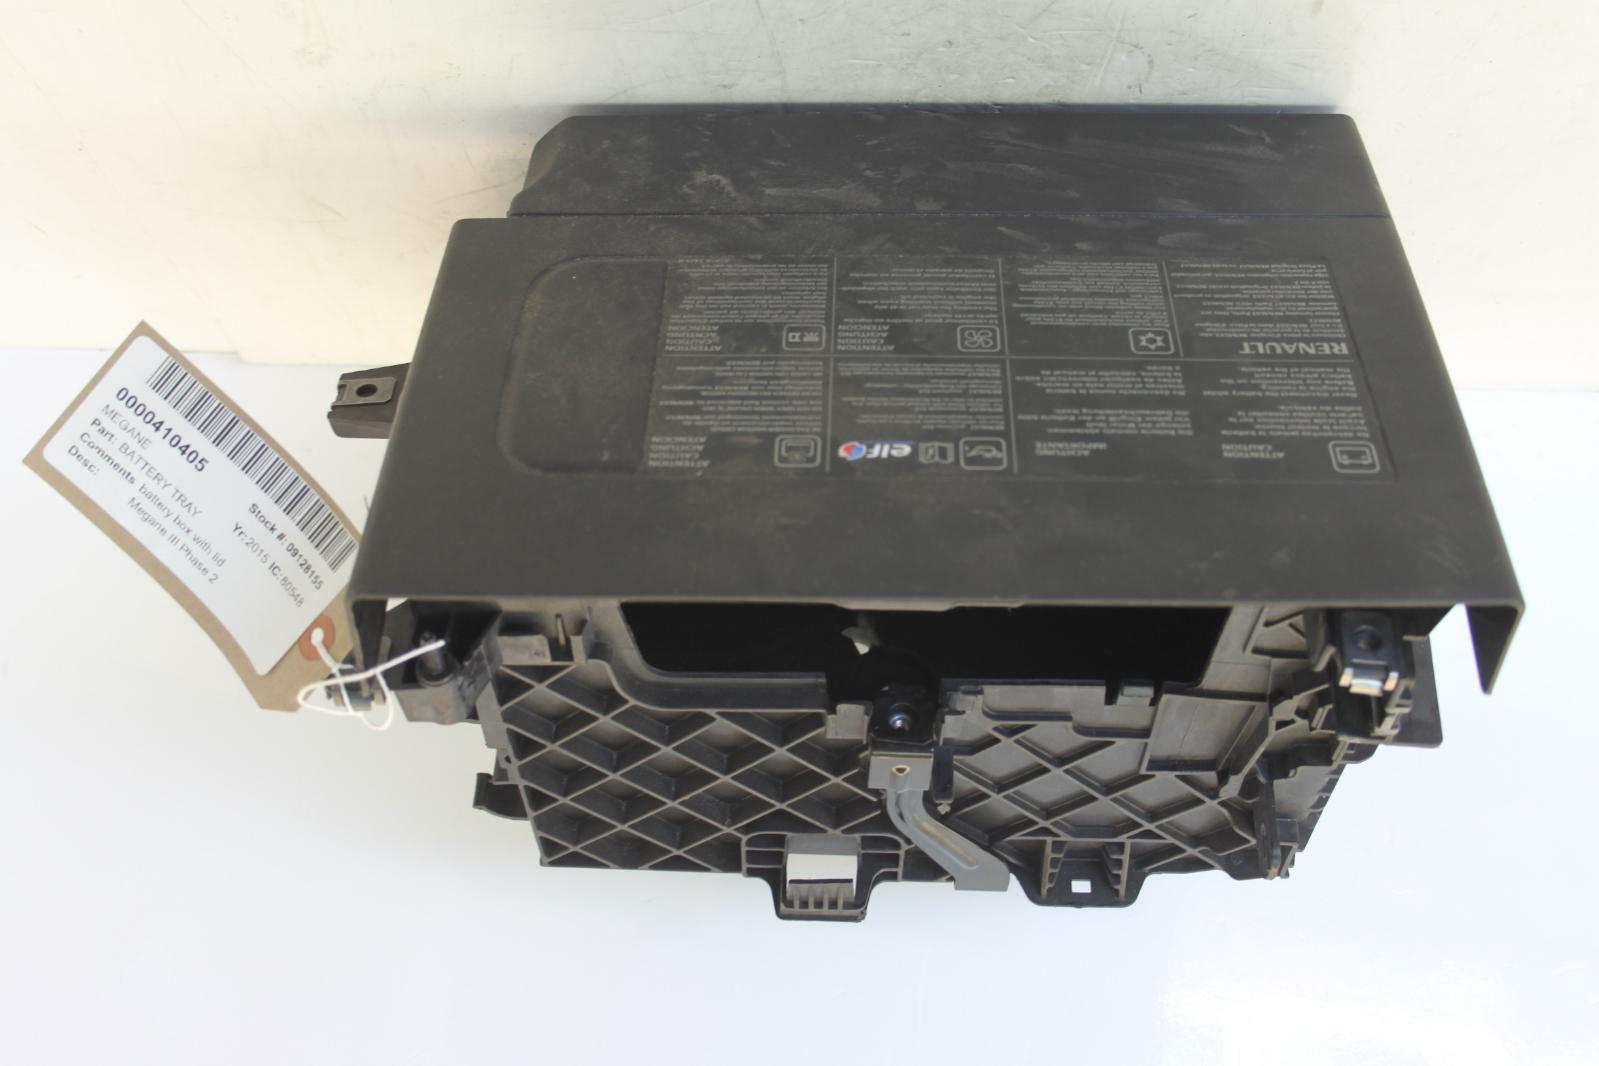 2015 renault megane 1461cc diesel battery box with lid ebay. Black Bedroom Furniture Sets. Home Design Ideas